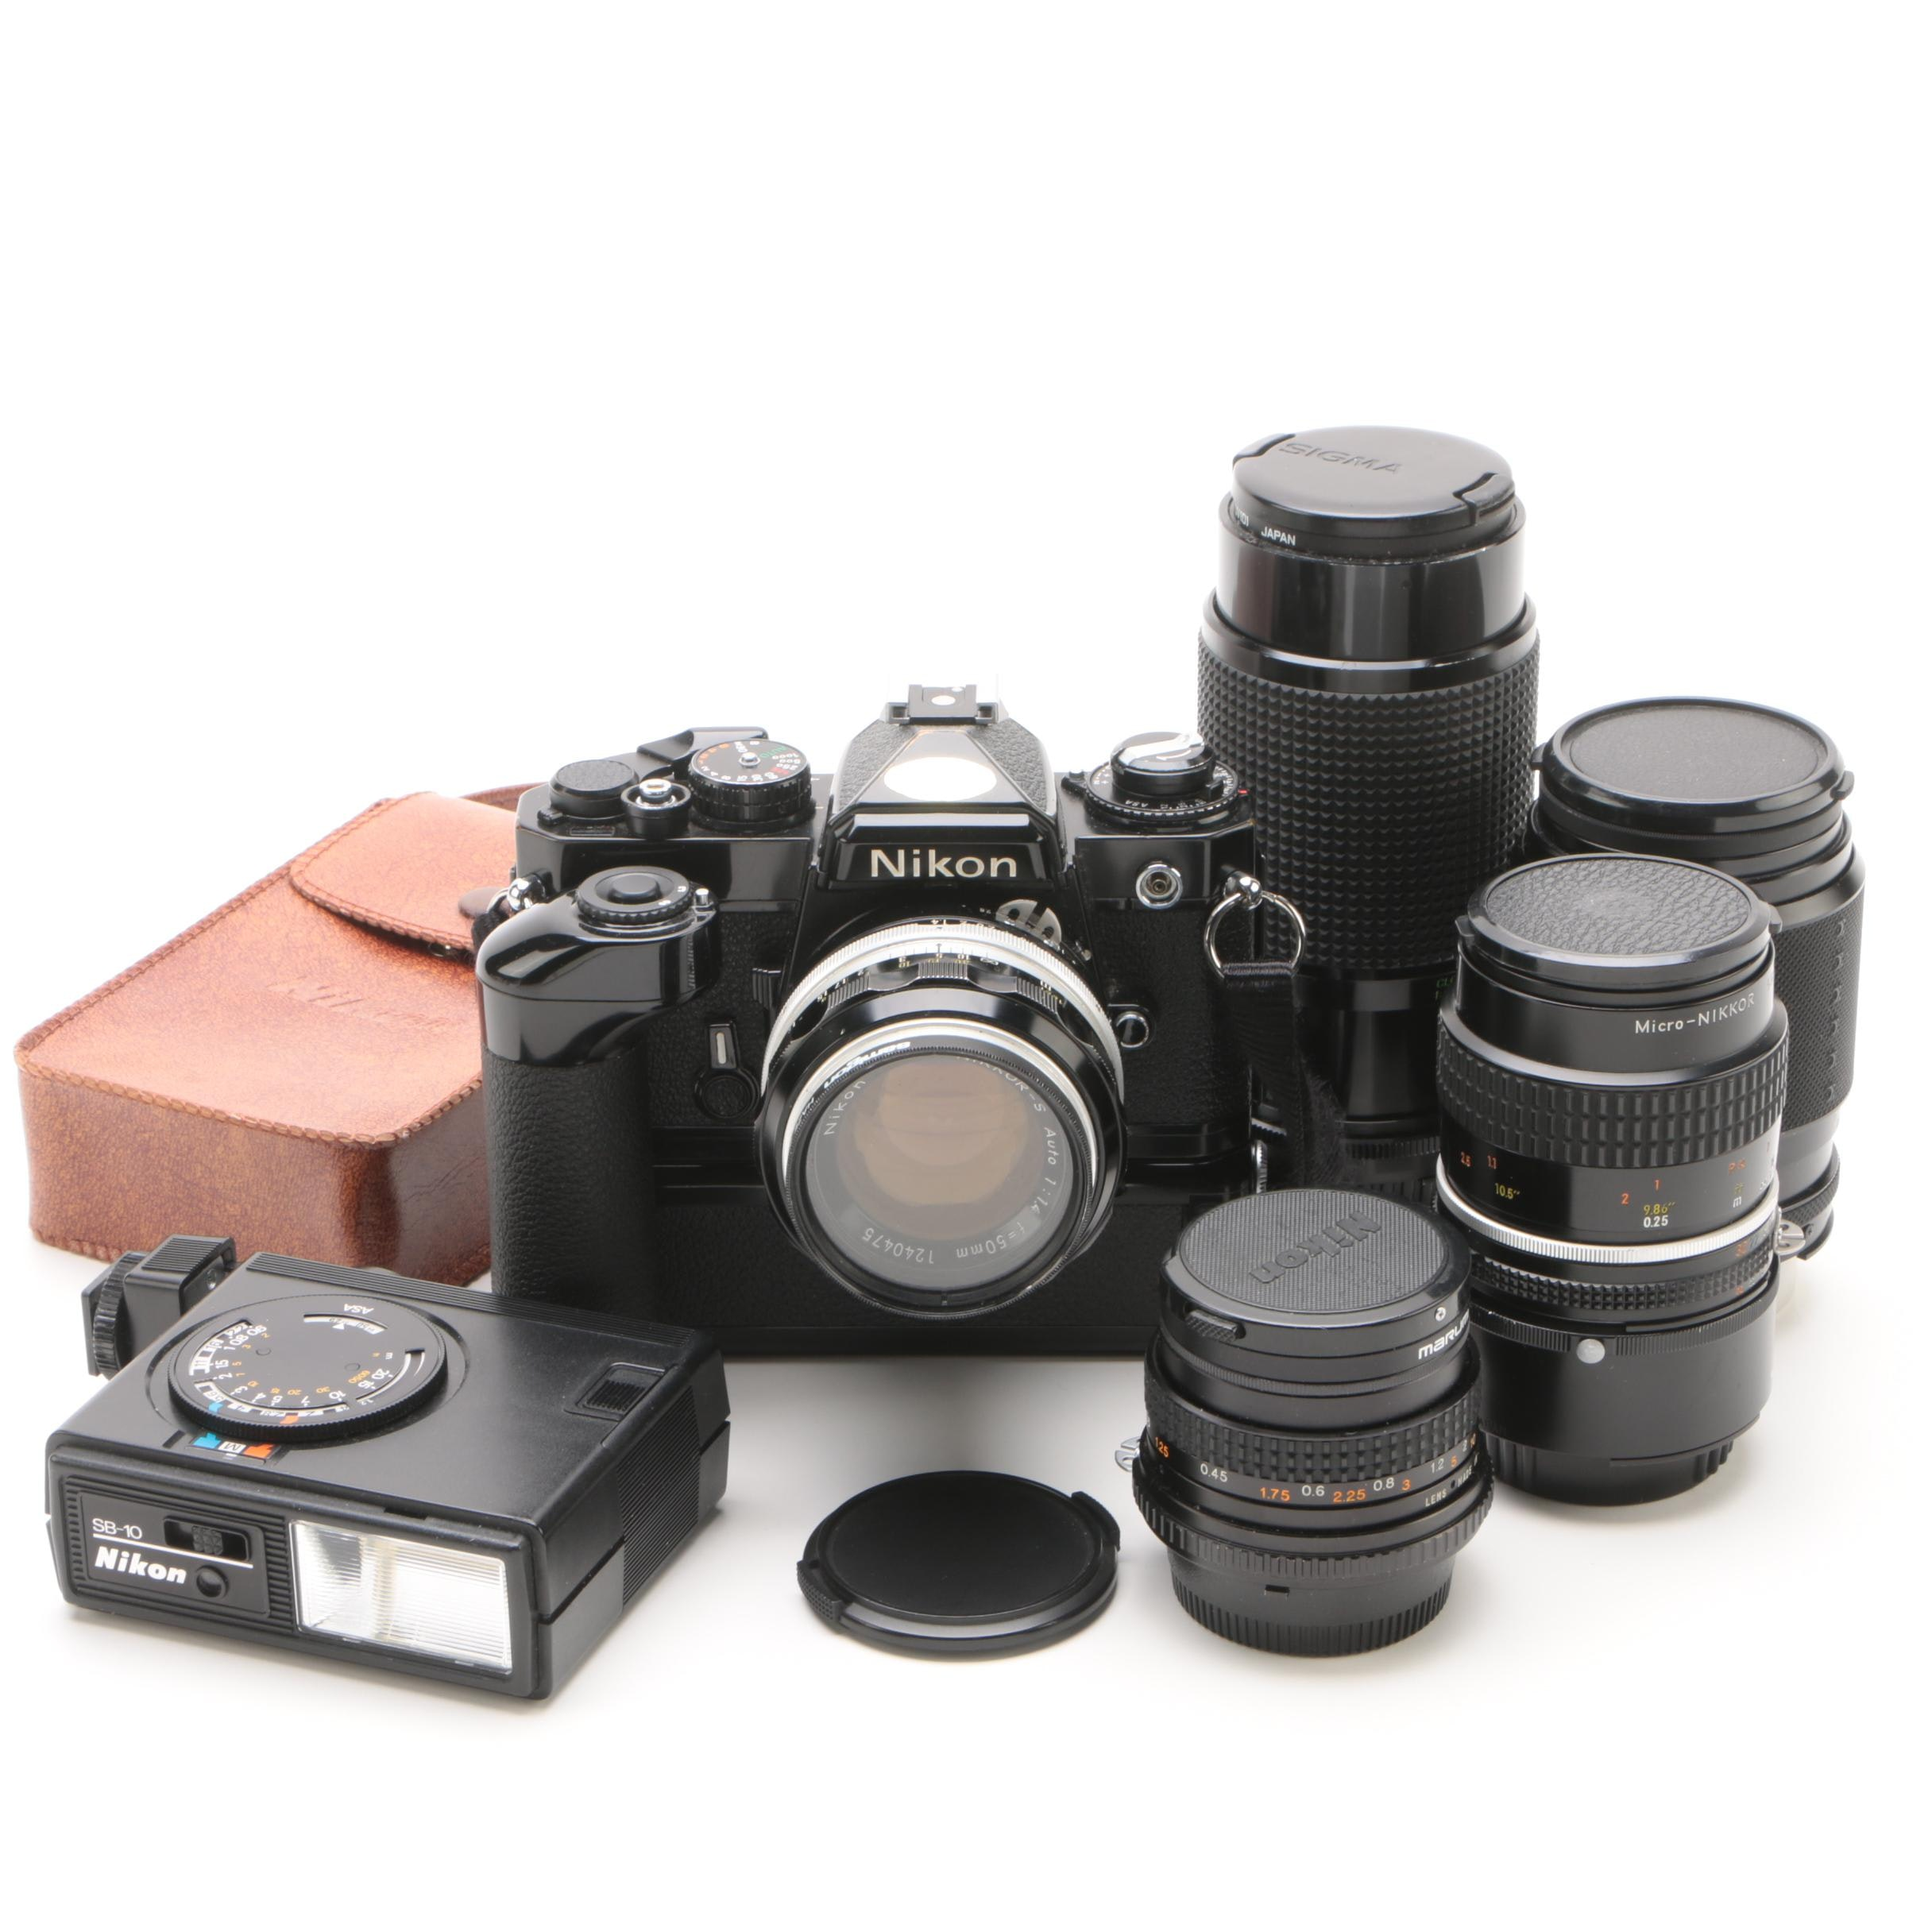 Nikon FE Camera with Motor Drive, Lens Attachments, and Flash